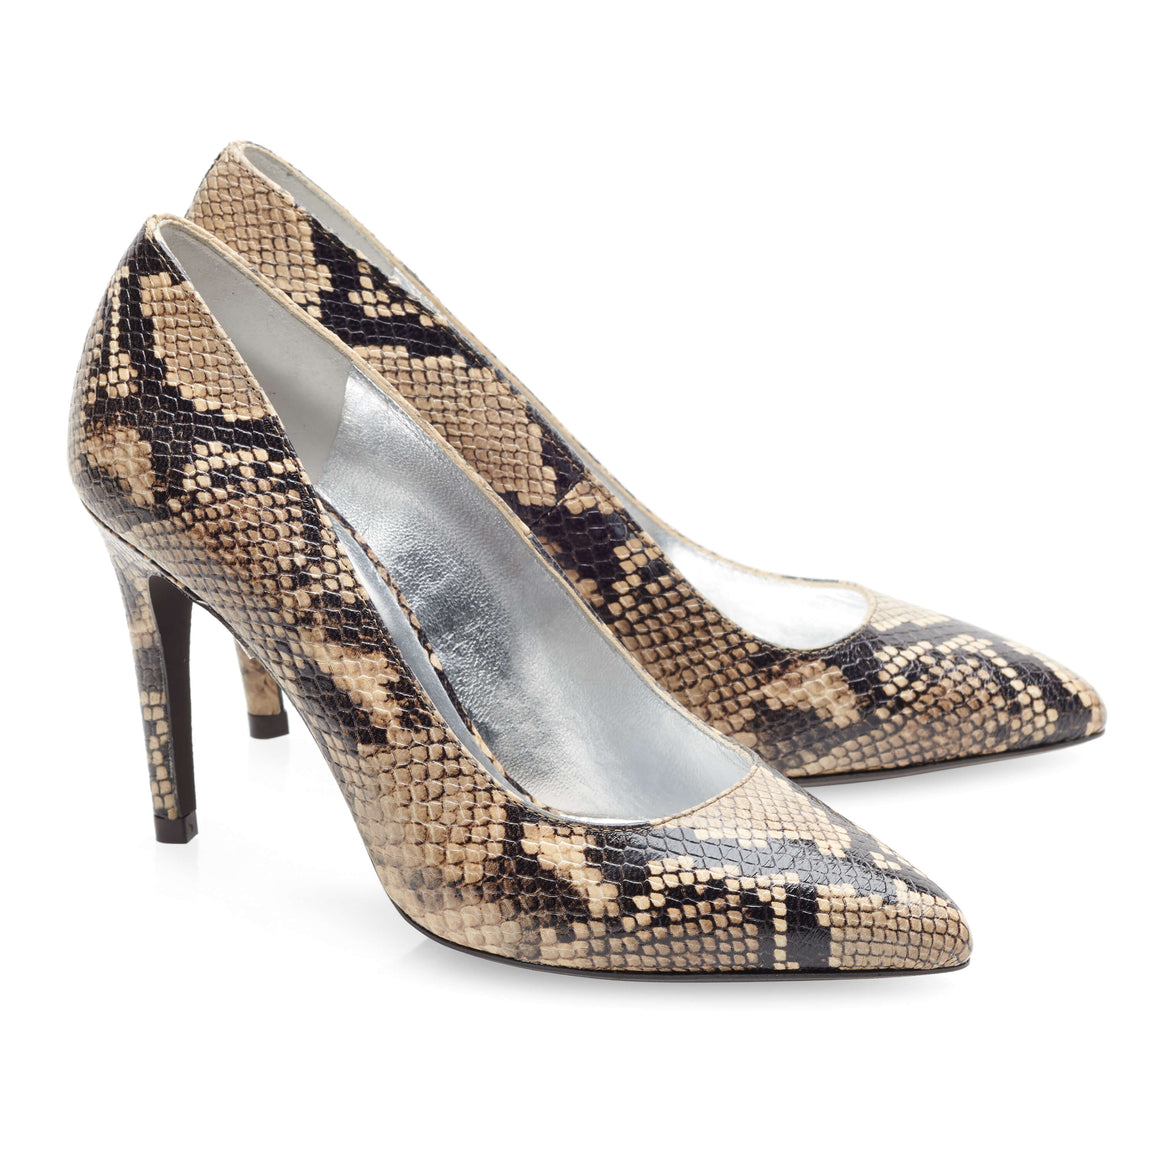 Image 1 of Francesca Tan Pumps from Bisous Confiture